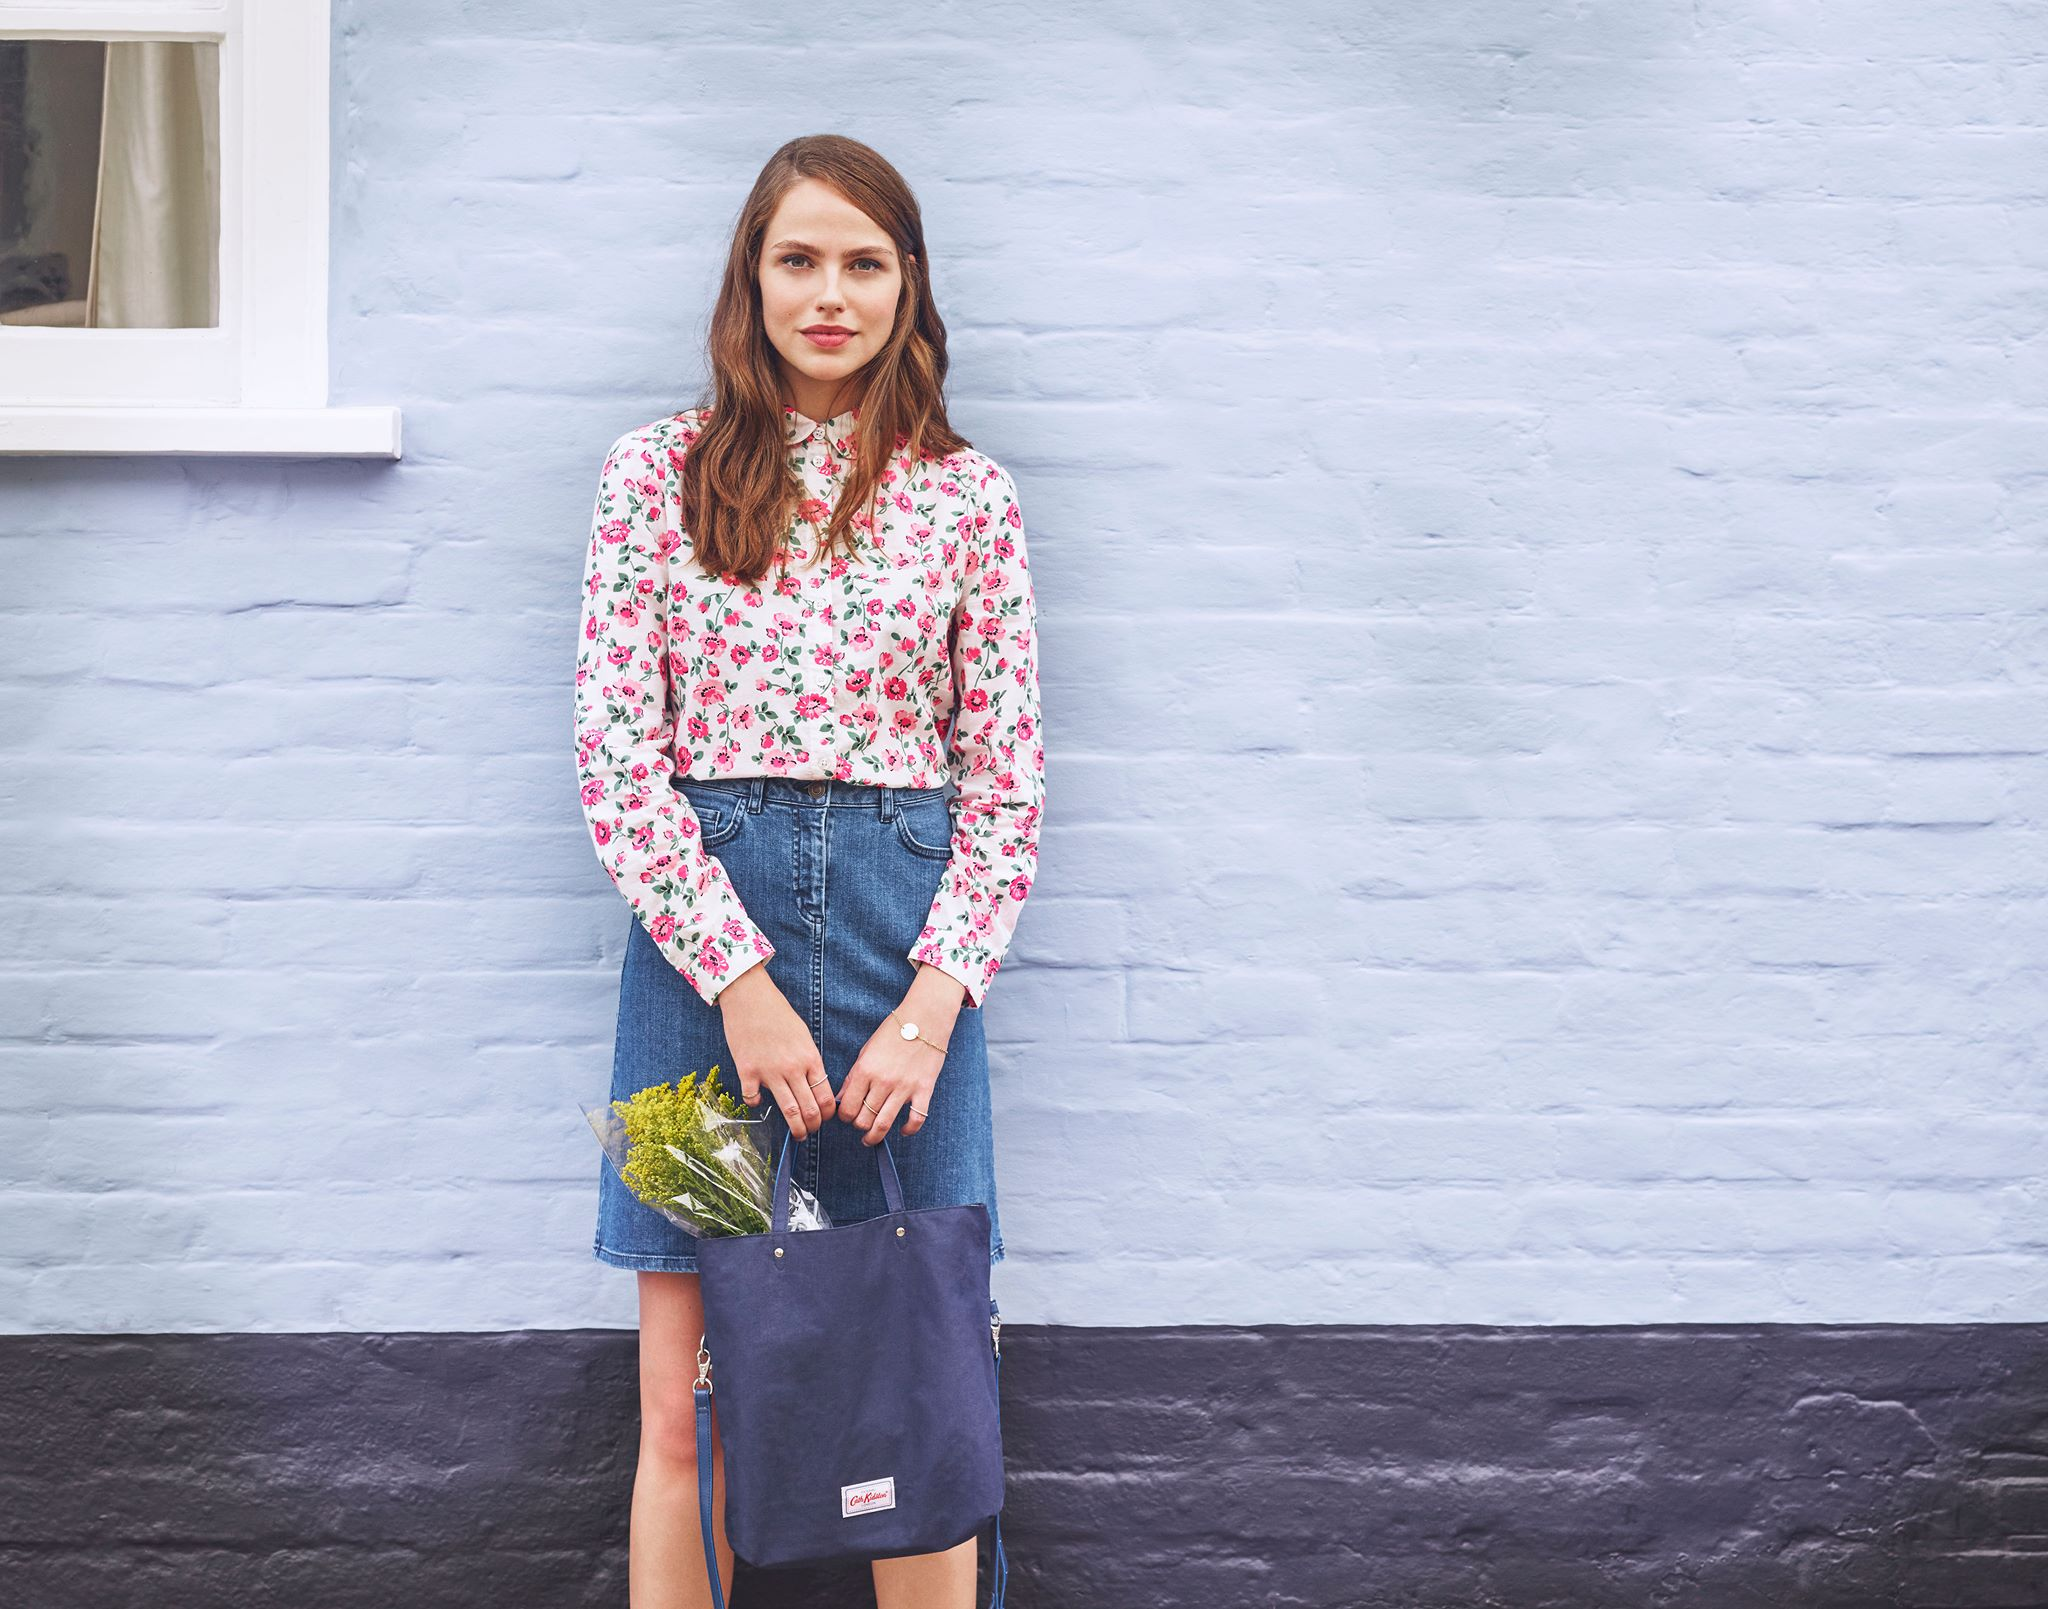 CALLING ALL STUDENTS! GET 10% OFF - That's right, students can benefit from10% Student Discount at Cath Kidston.For instant access to this discount simply register and verify your student status with UNiDAYS.